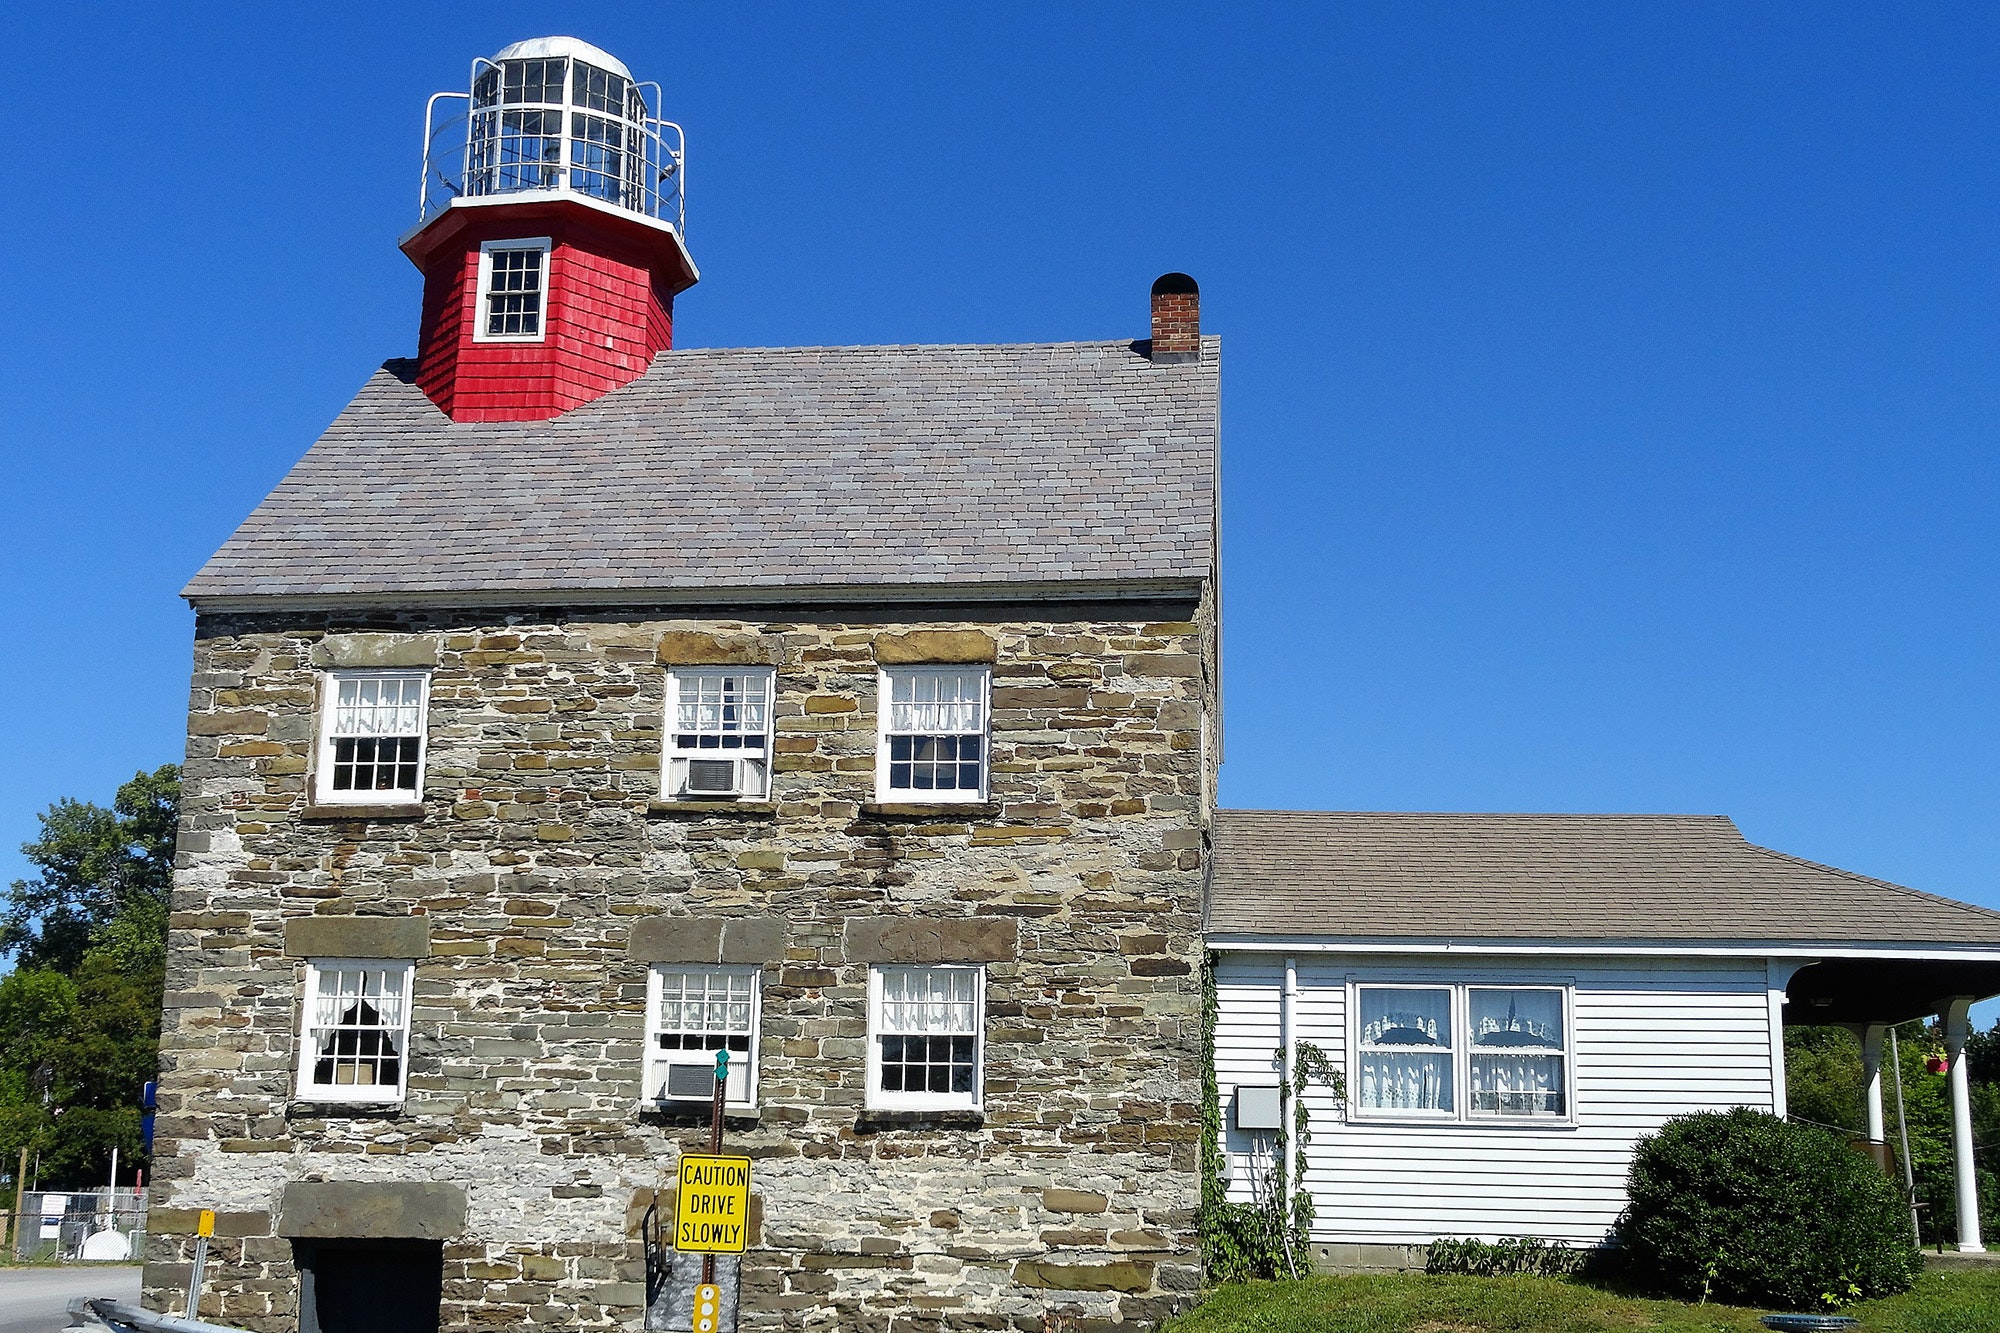 The birdcage lantern atop the Salmon River Lighthouse is one of only a few remaining in service today.